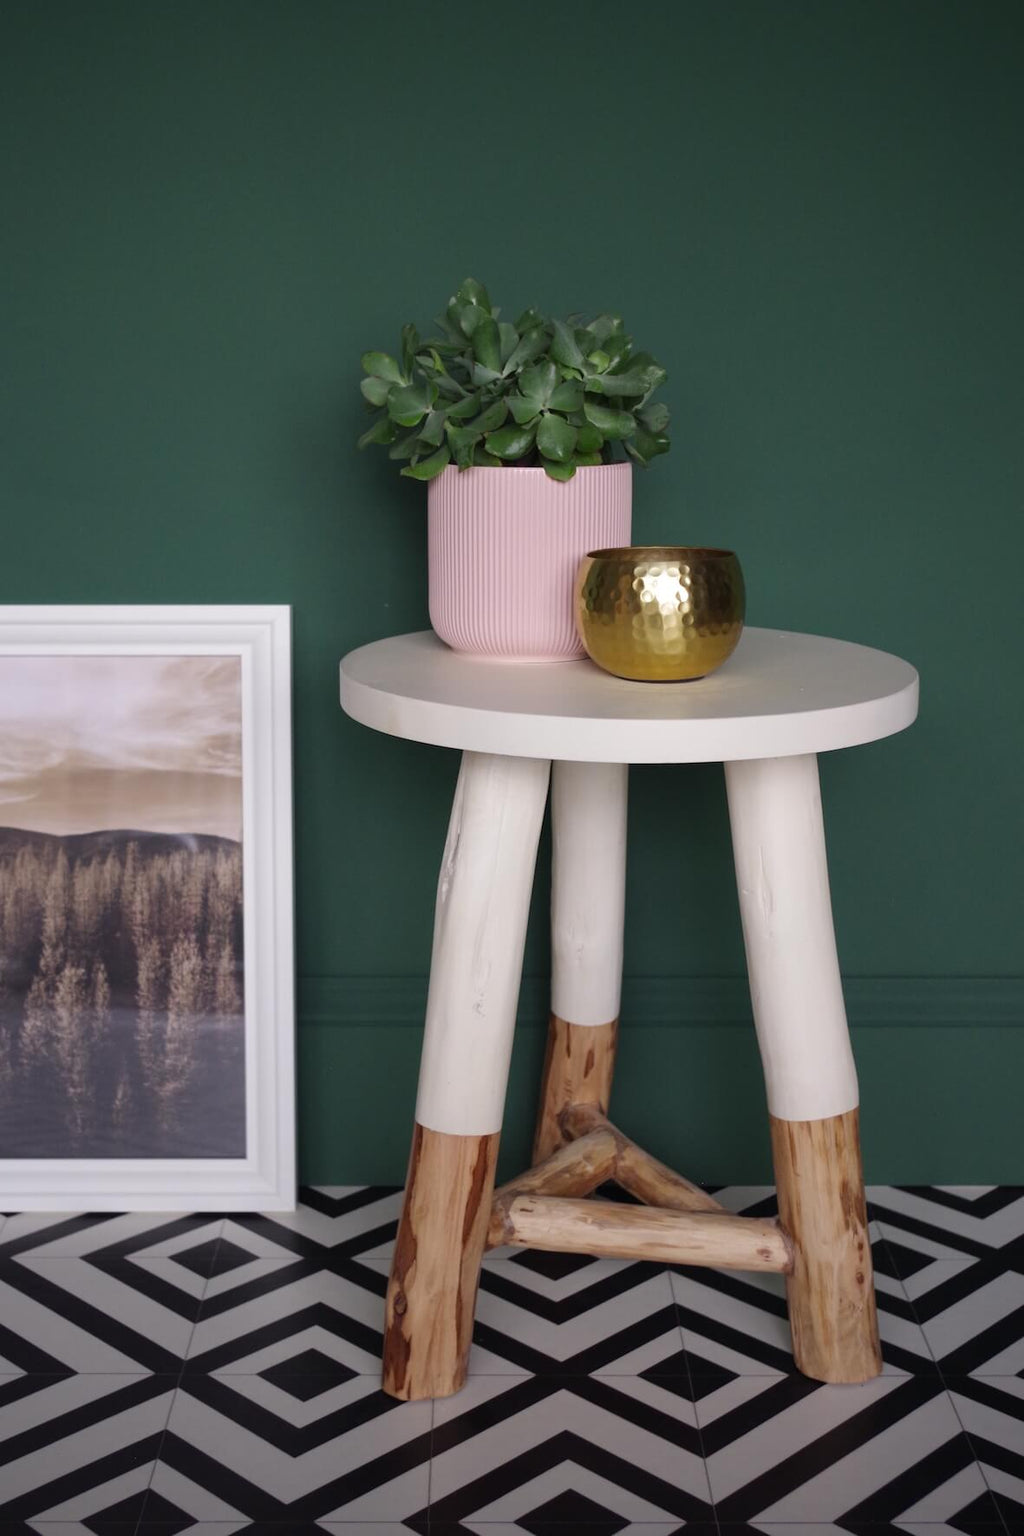 Rustic Dipped Stool - White